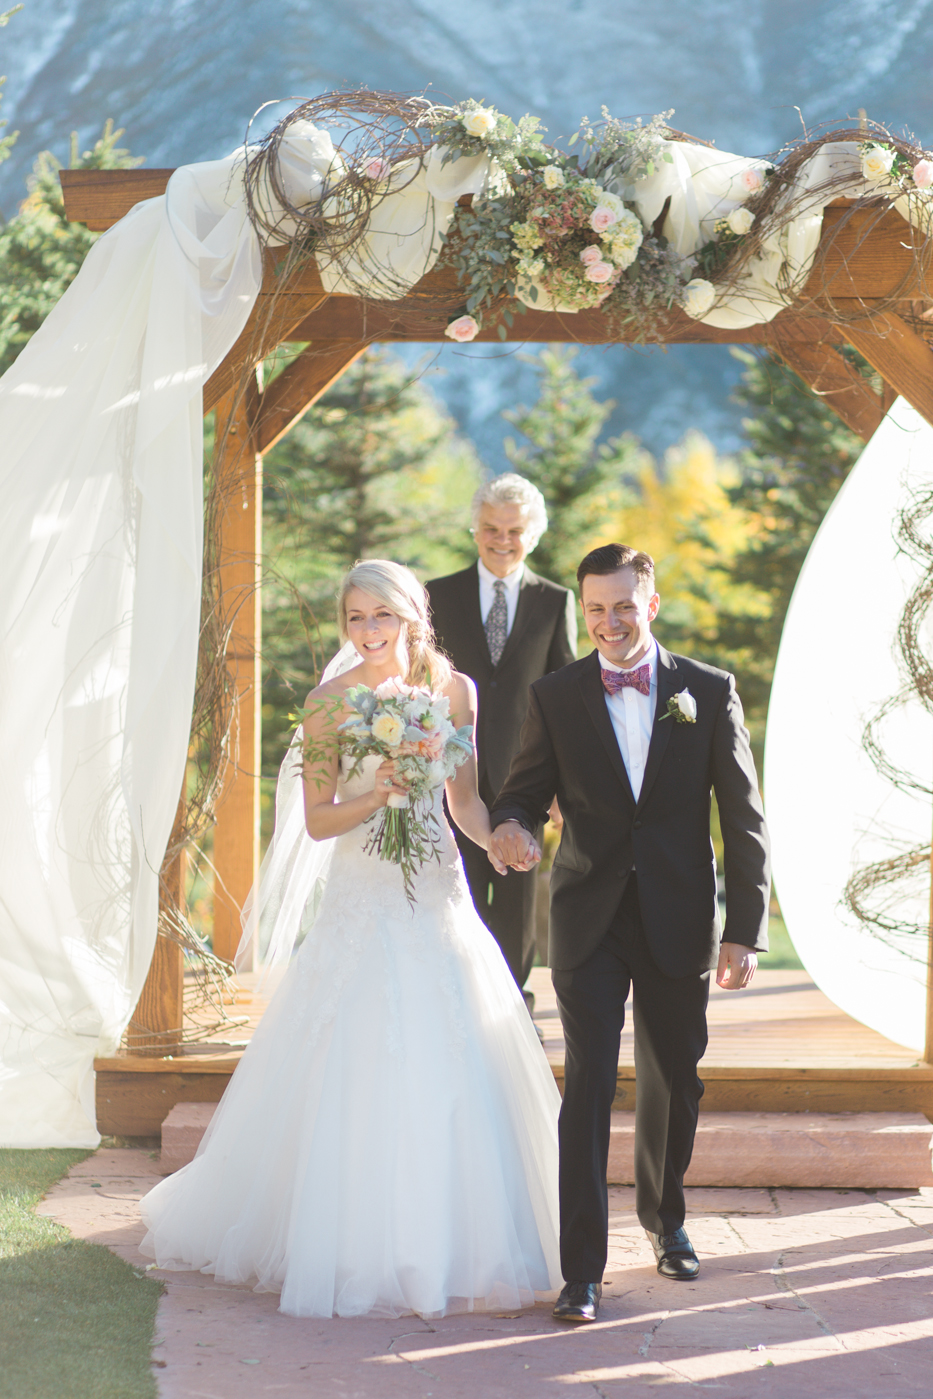 c61-Aspen-Wedding-Photographer-18.jpg